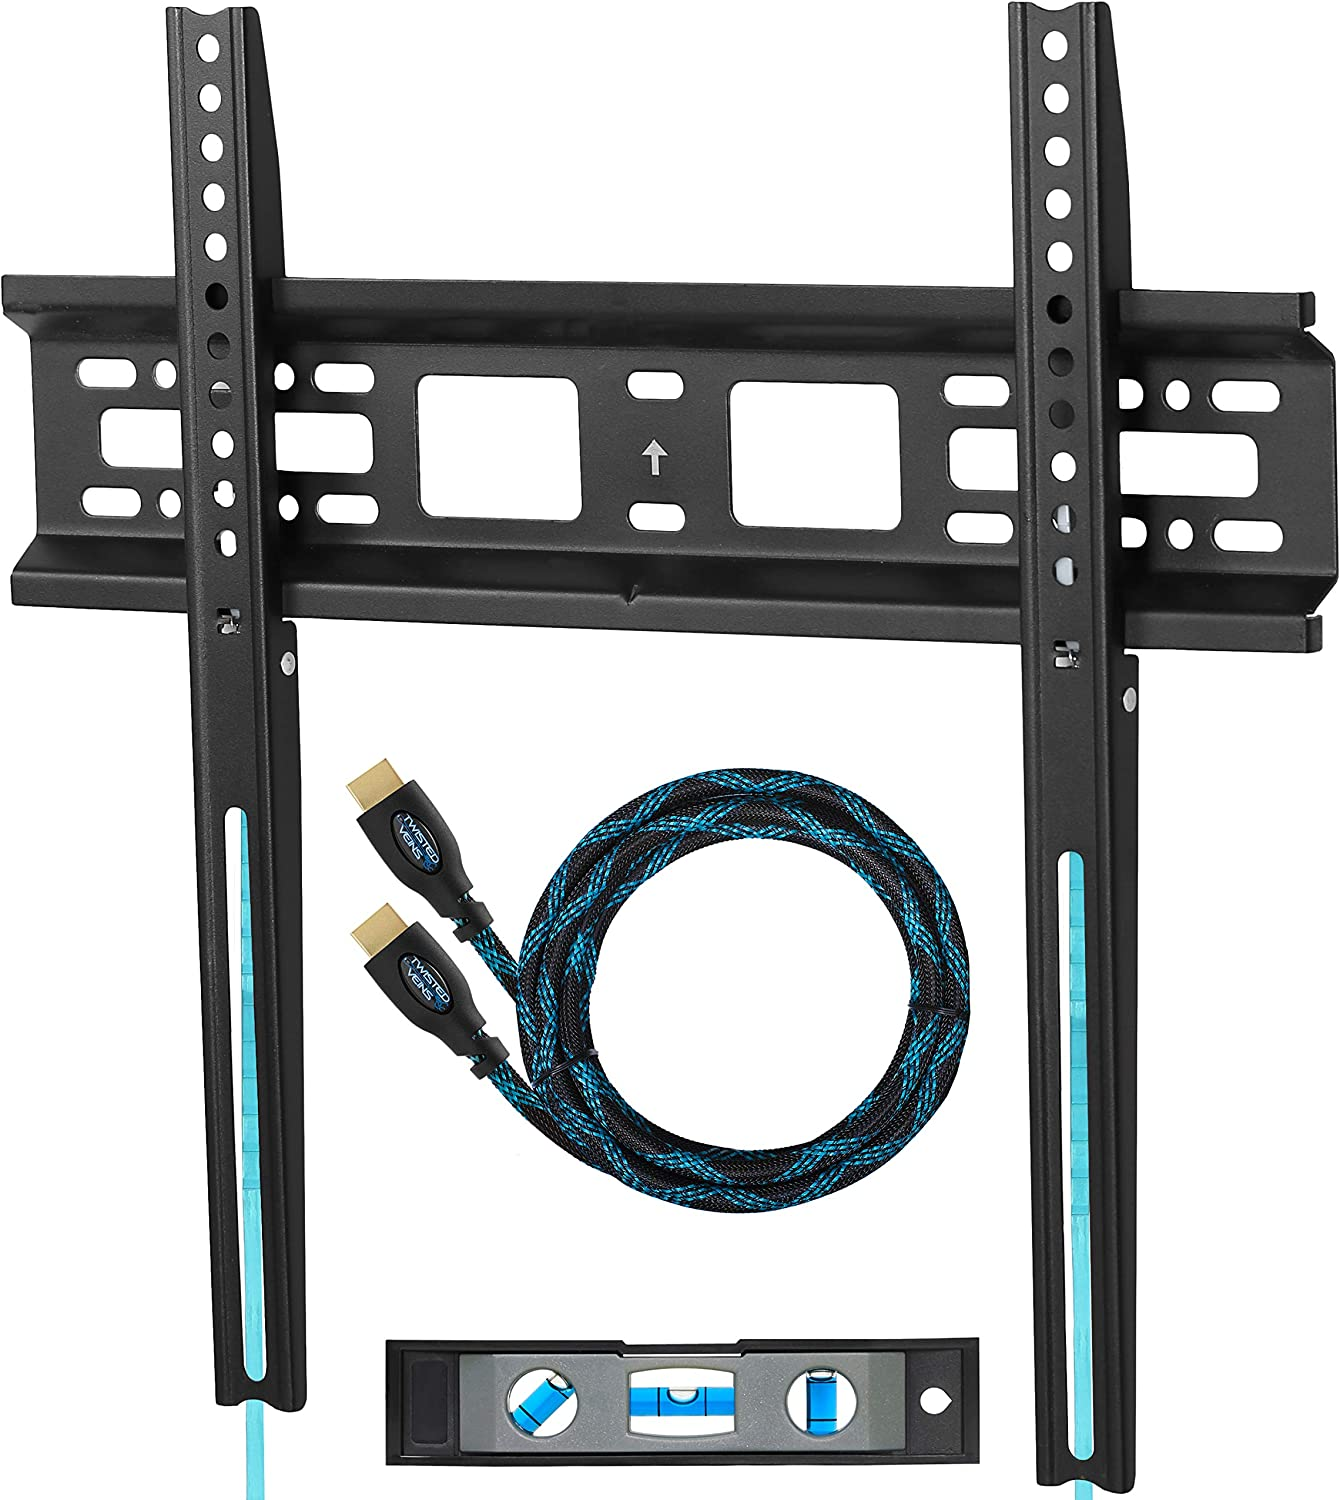 "Cheetah Mounts APFMSB Best TV Wall Mount Bracket for 20-55"" TVs"